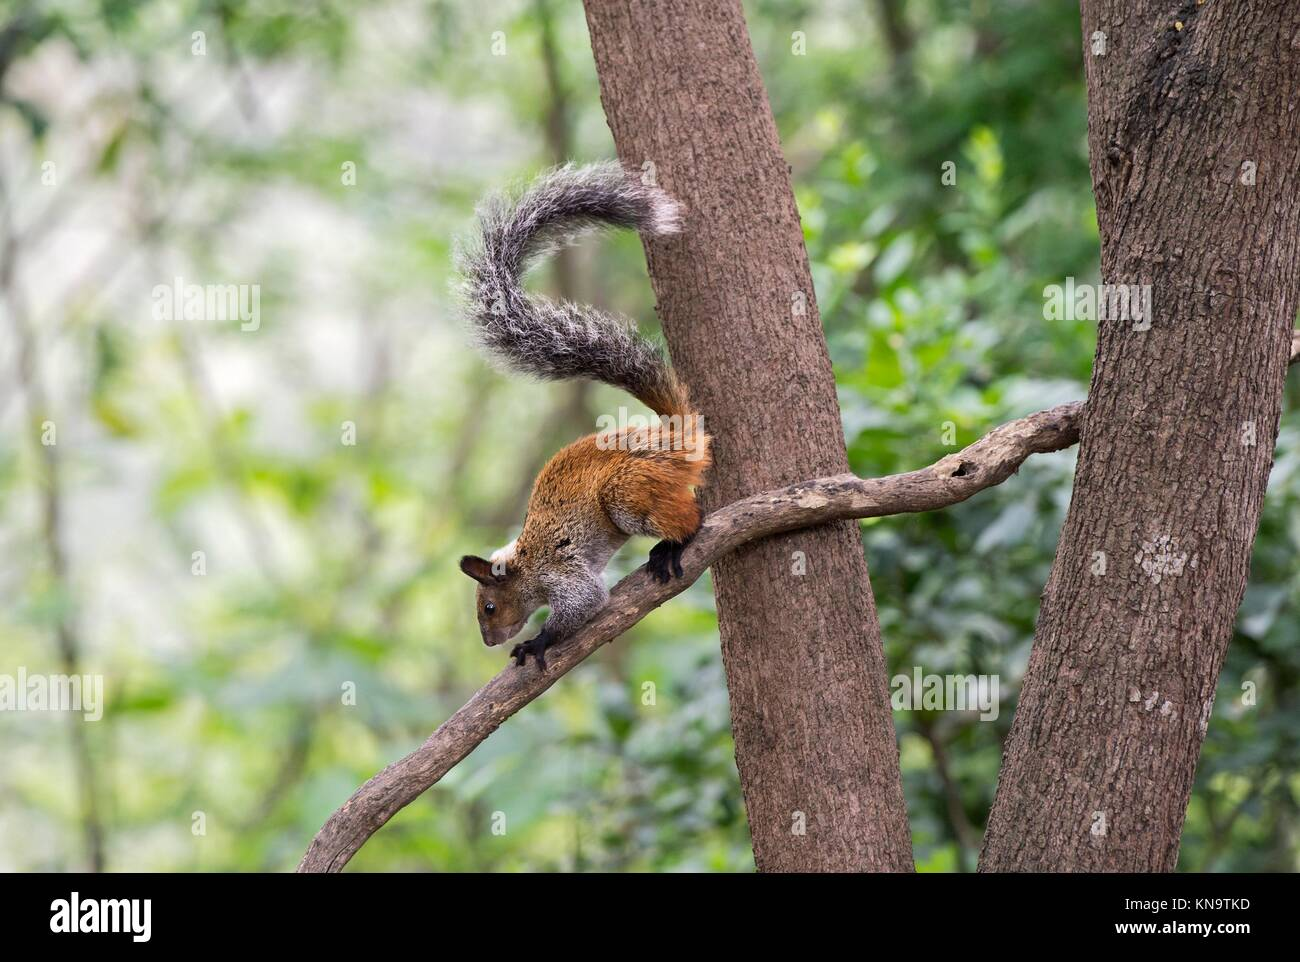 Guayaquil Squirrel (Sciurus stramineus), a tree squirrel endemic to Ecuador and Peru, Squirrel family (Sciuridae), - Stock Image